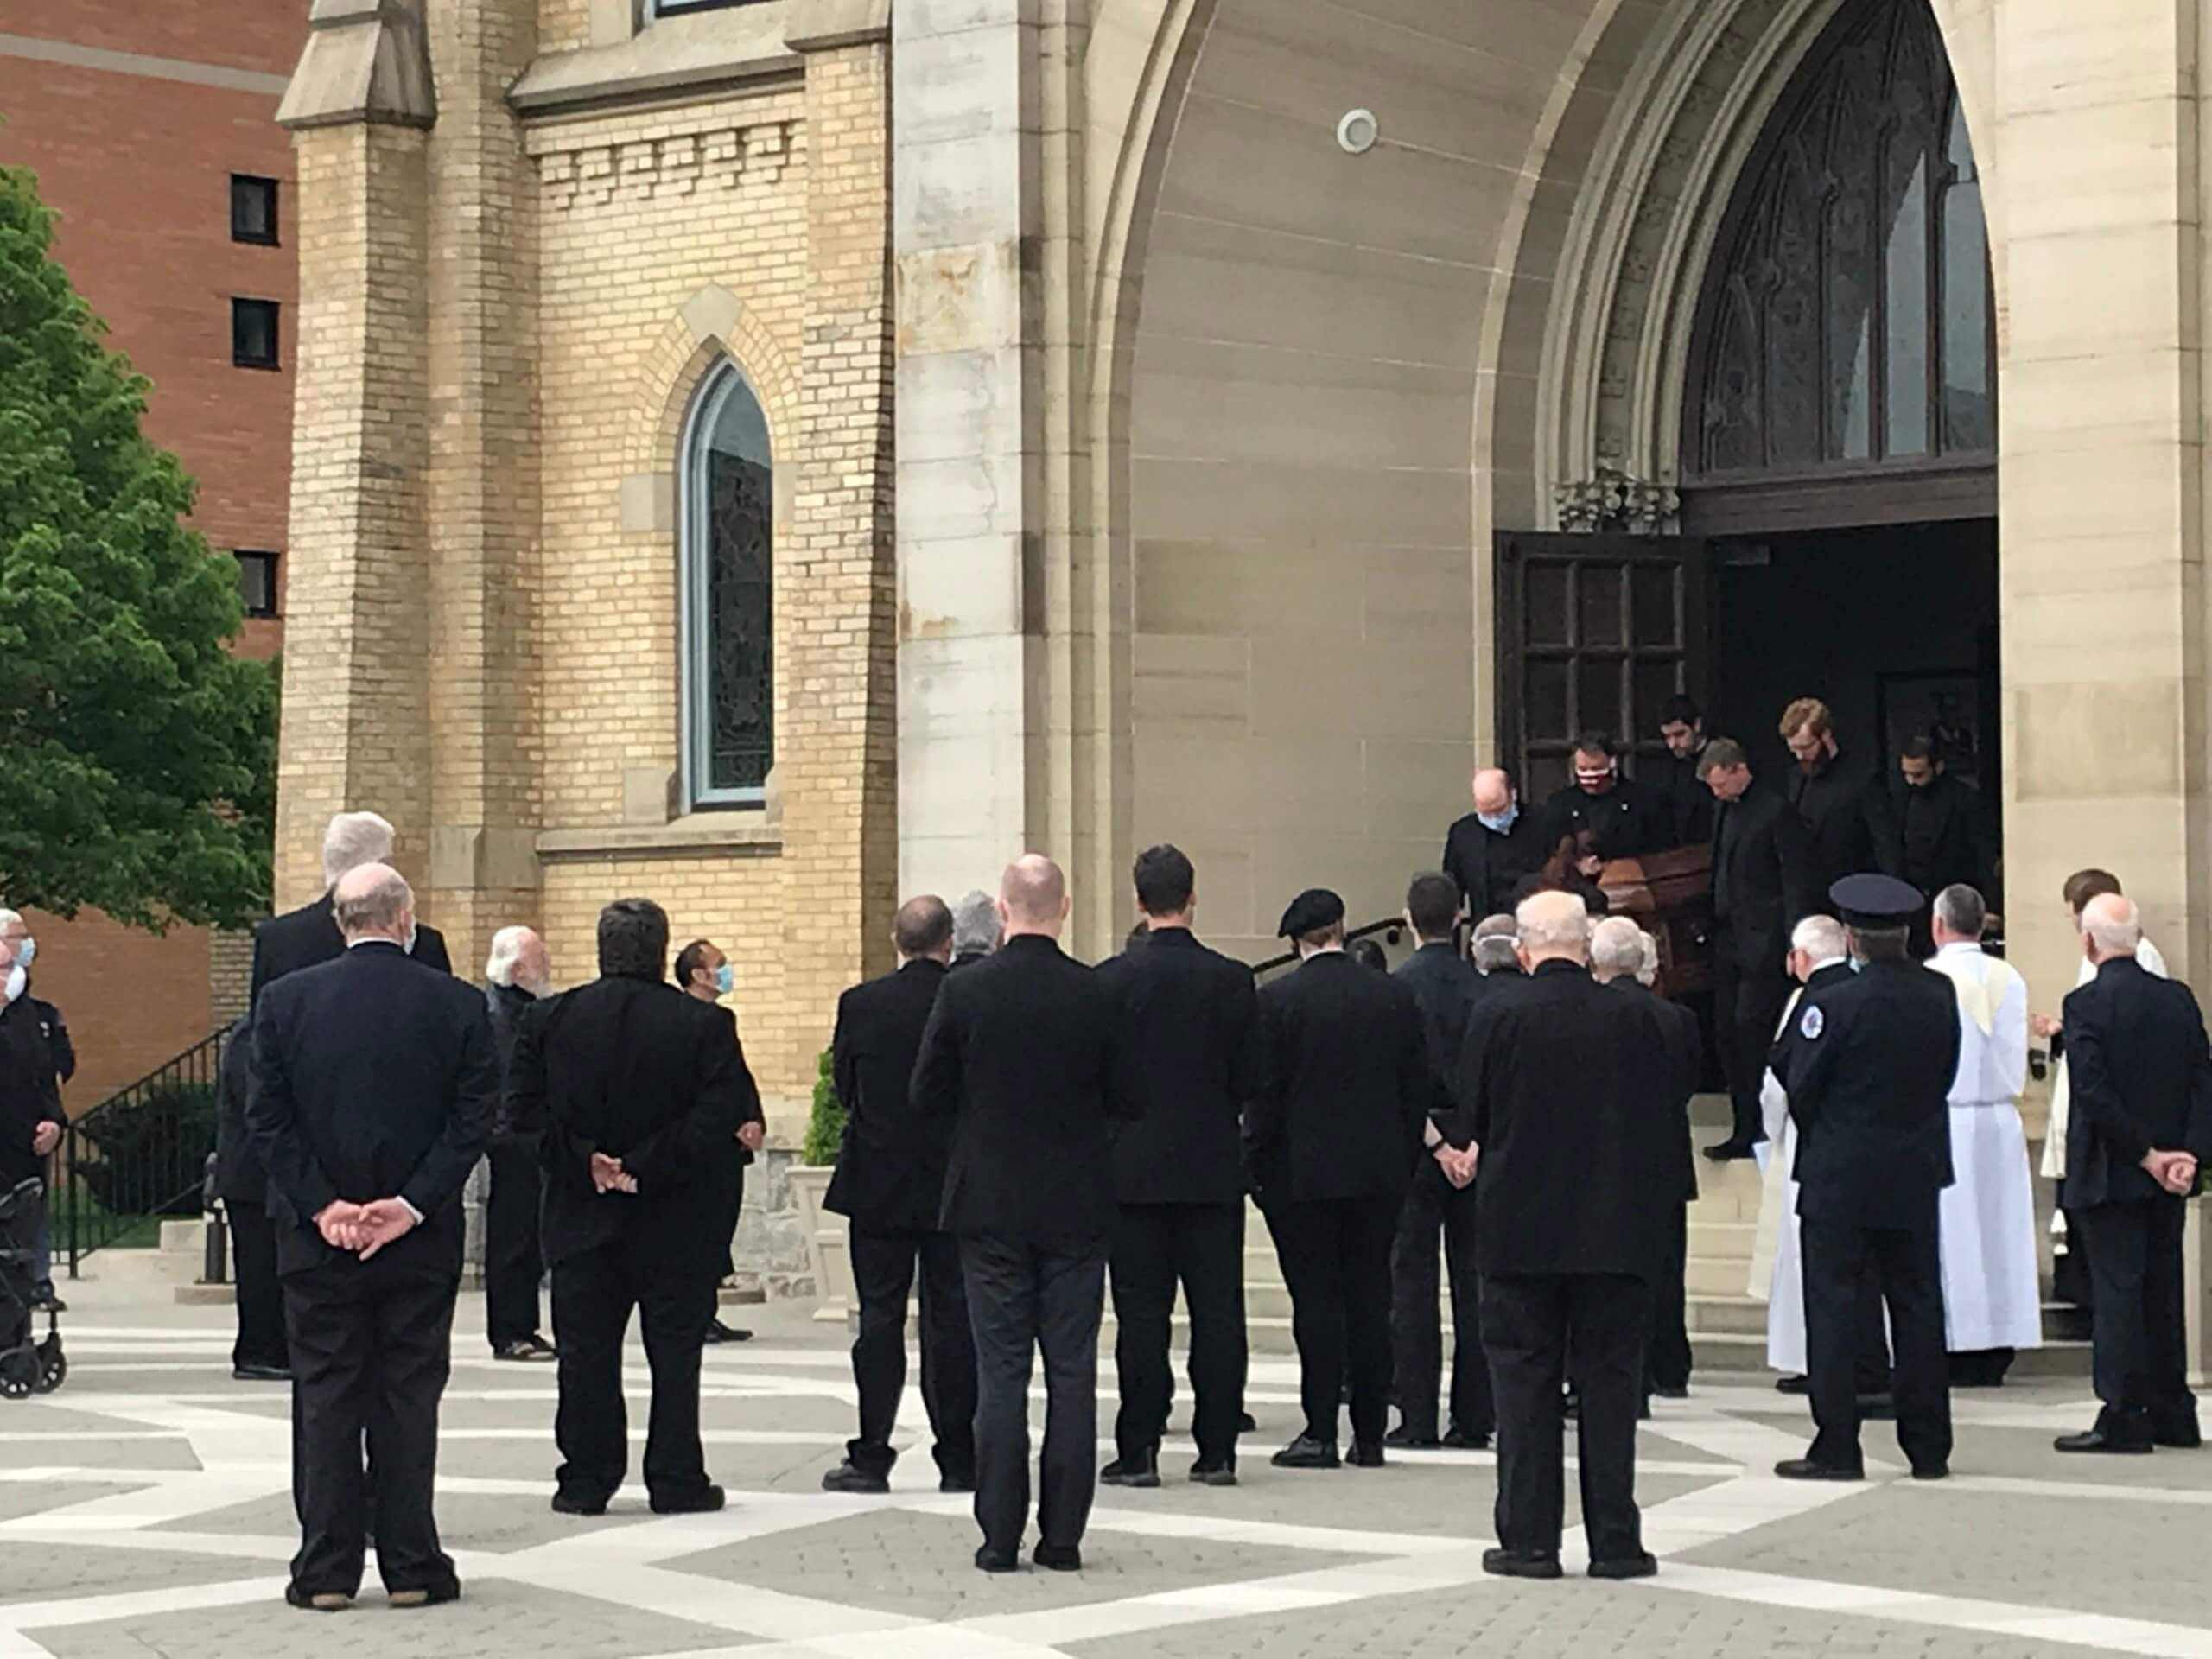 people dressed in black outside of a church